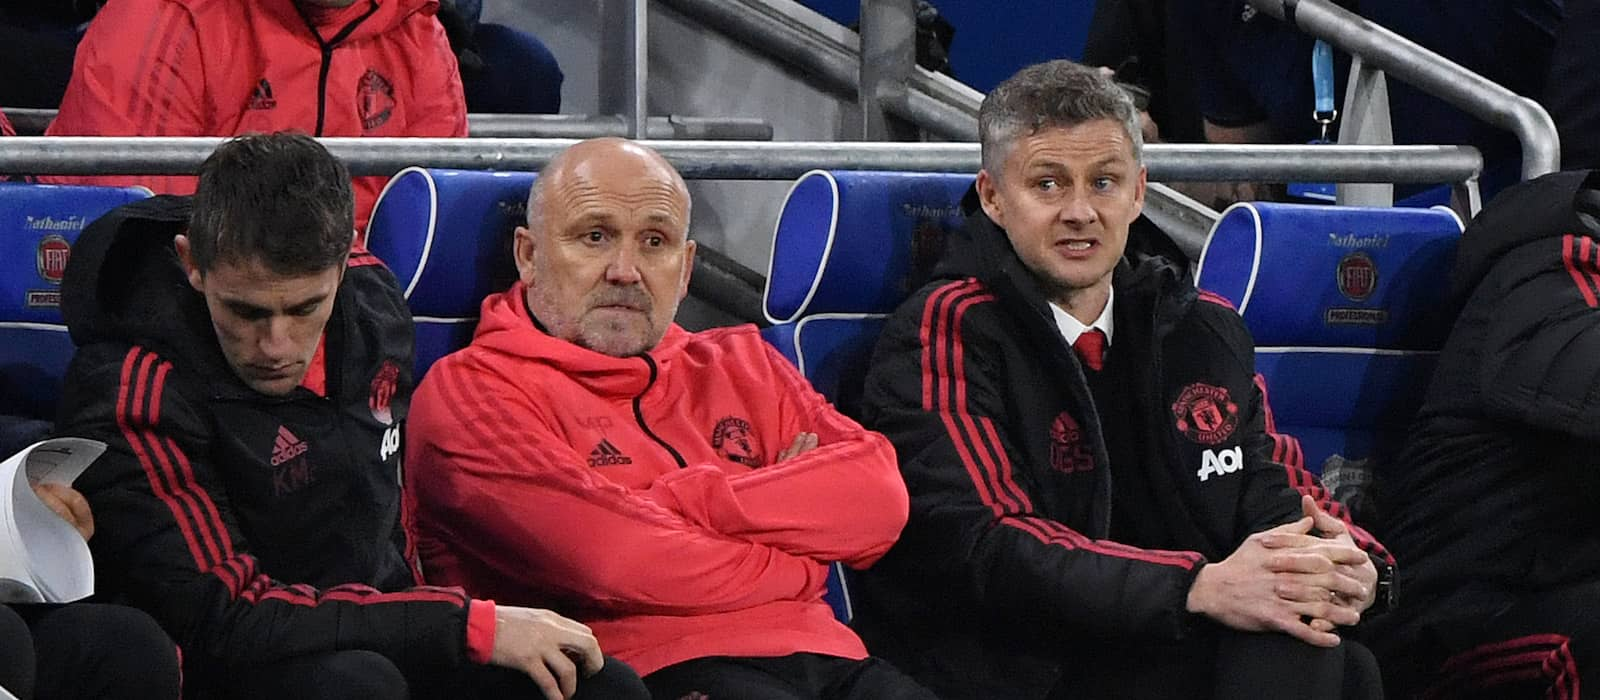 Ole Gunnar Solskjaer: Has he solved Manchester United's major problem immediately?